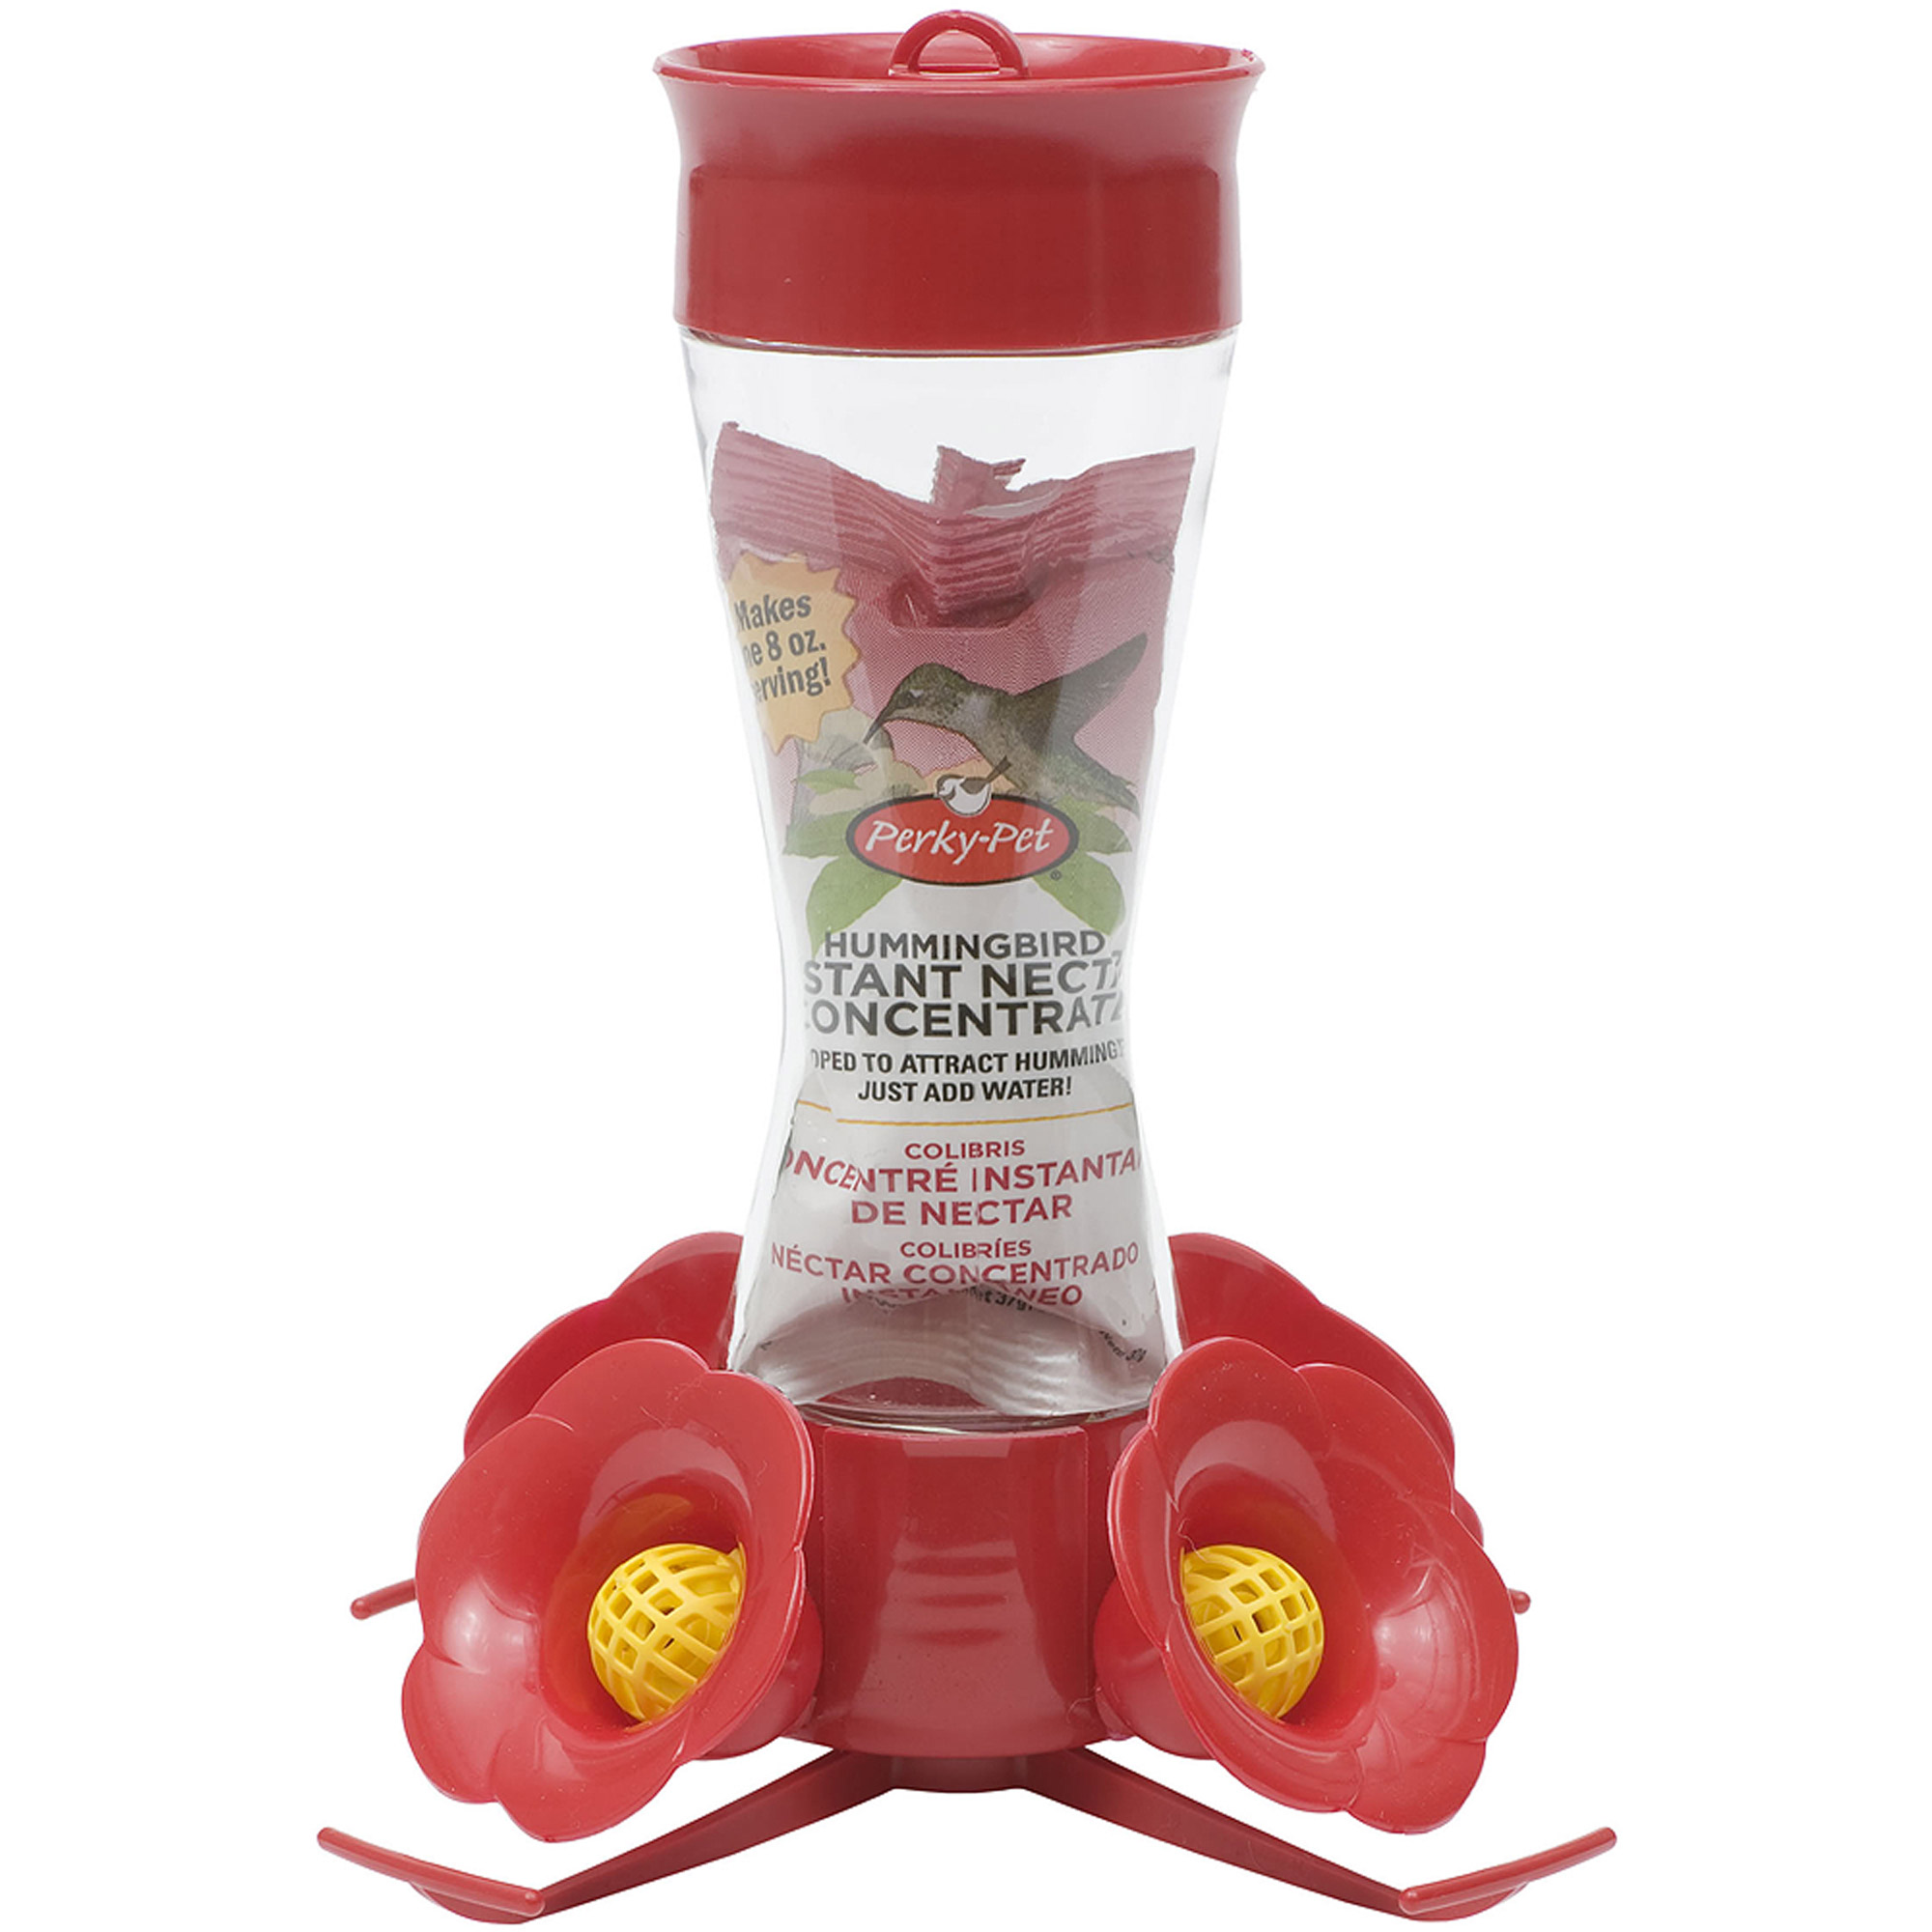 Perky-Pet Pinch Waist Glass Hummingbird Feeder with Free Nectar